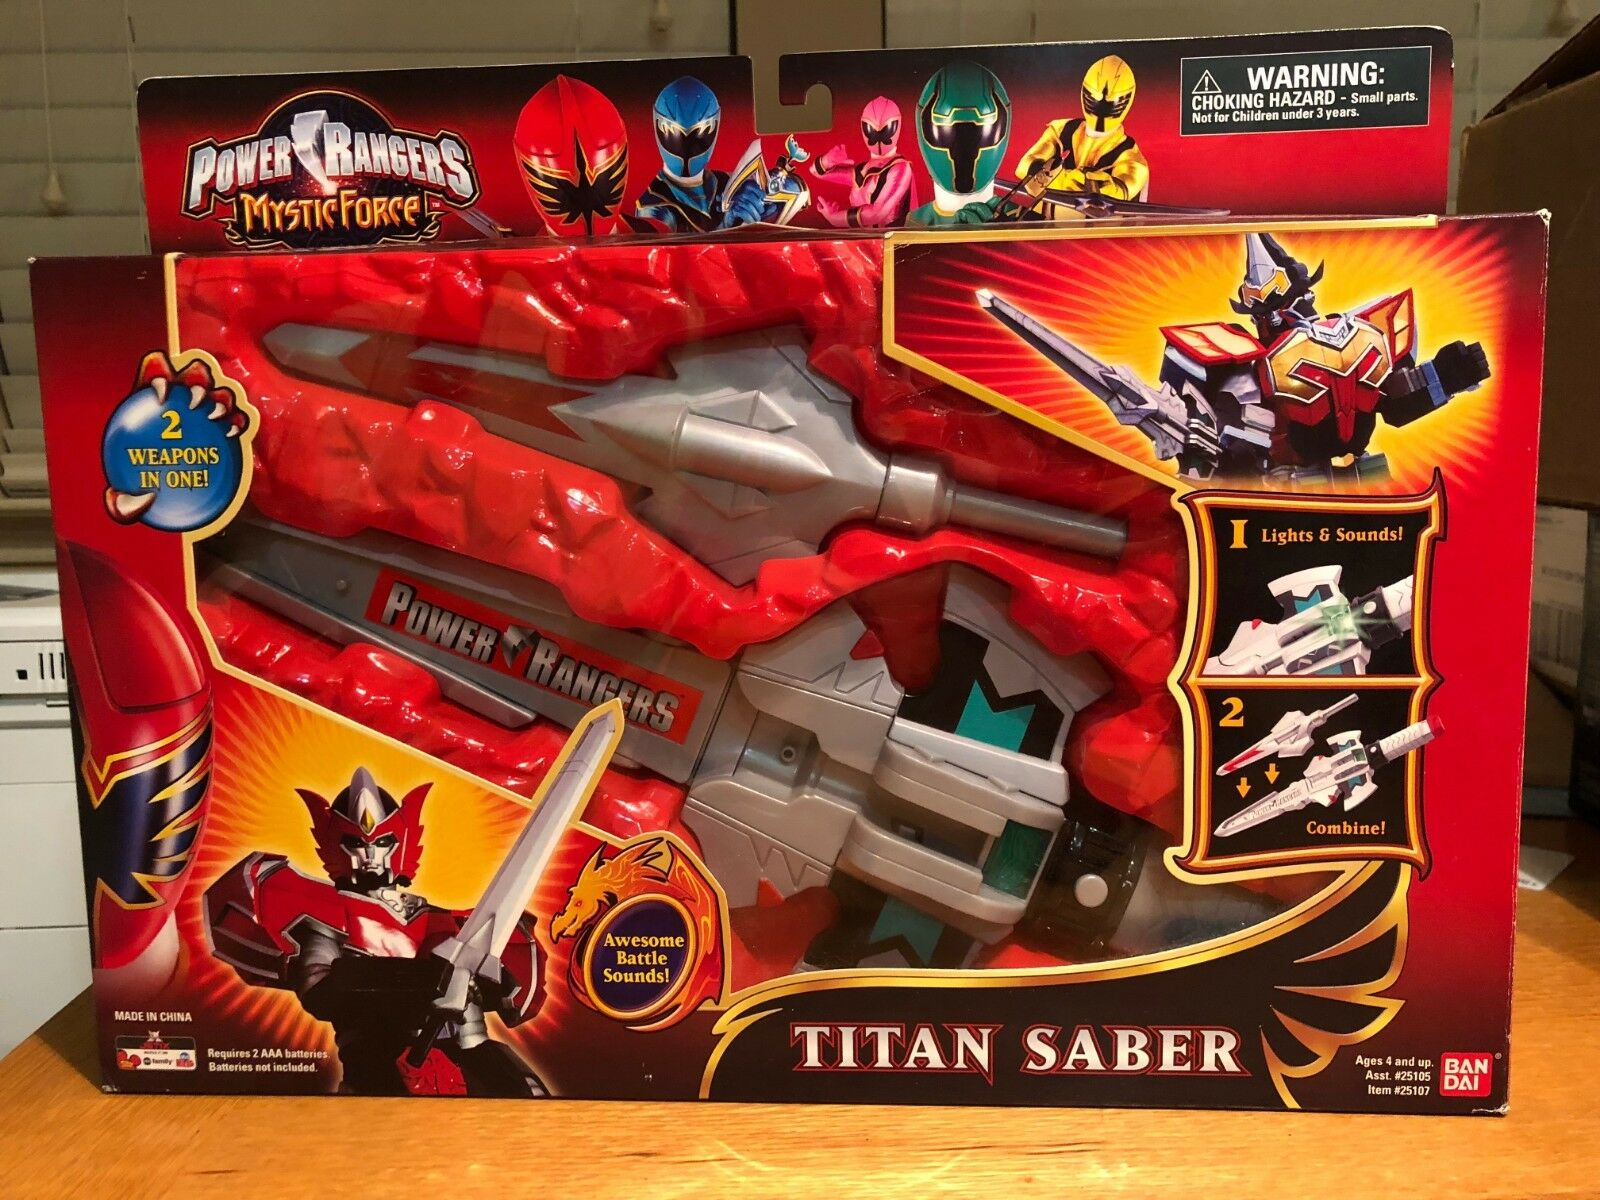 POWER RANGERS MYSTIC FORCE TITAN SABER WEAPON SWORD Complete in Box